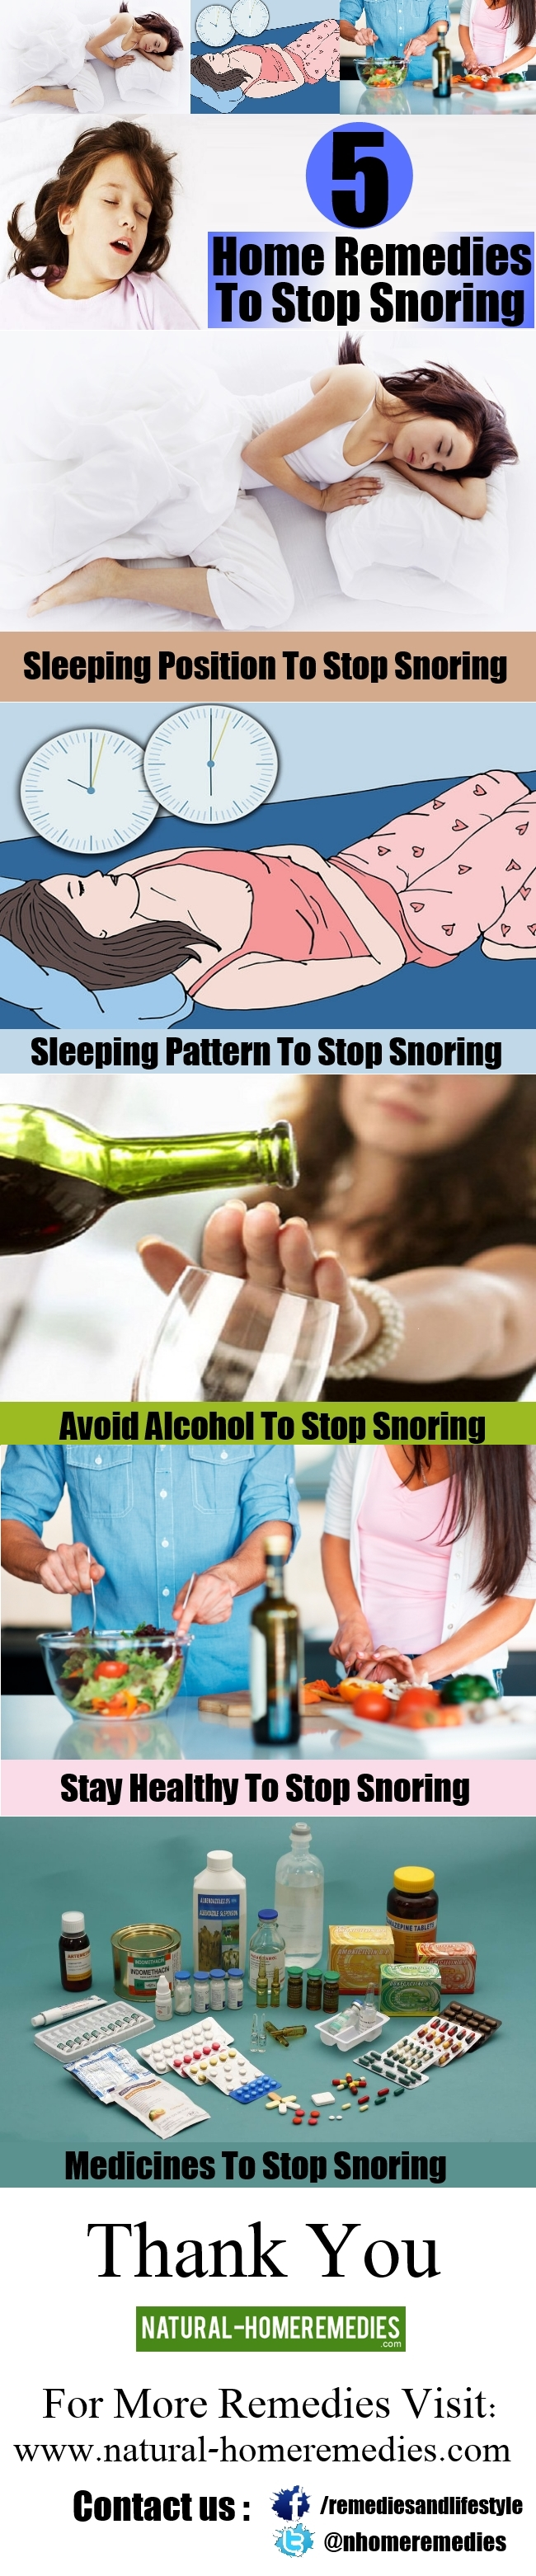 5 Effective Home Remedies To Stop Snoring